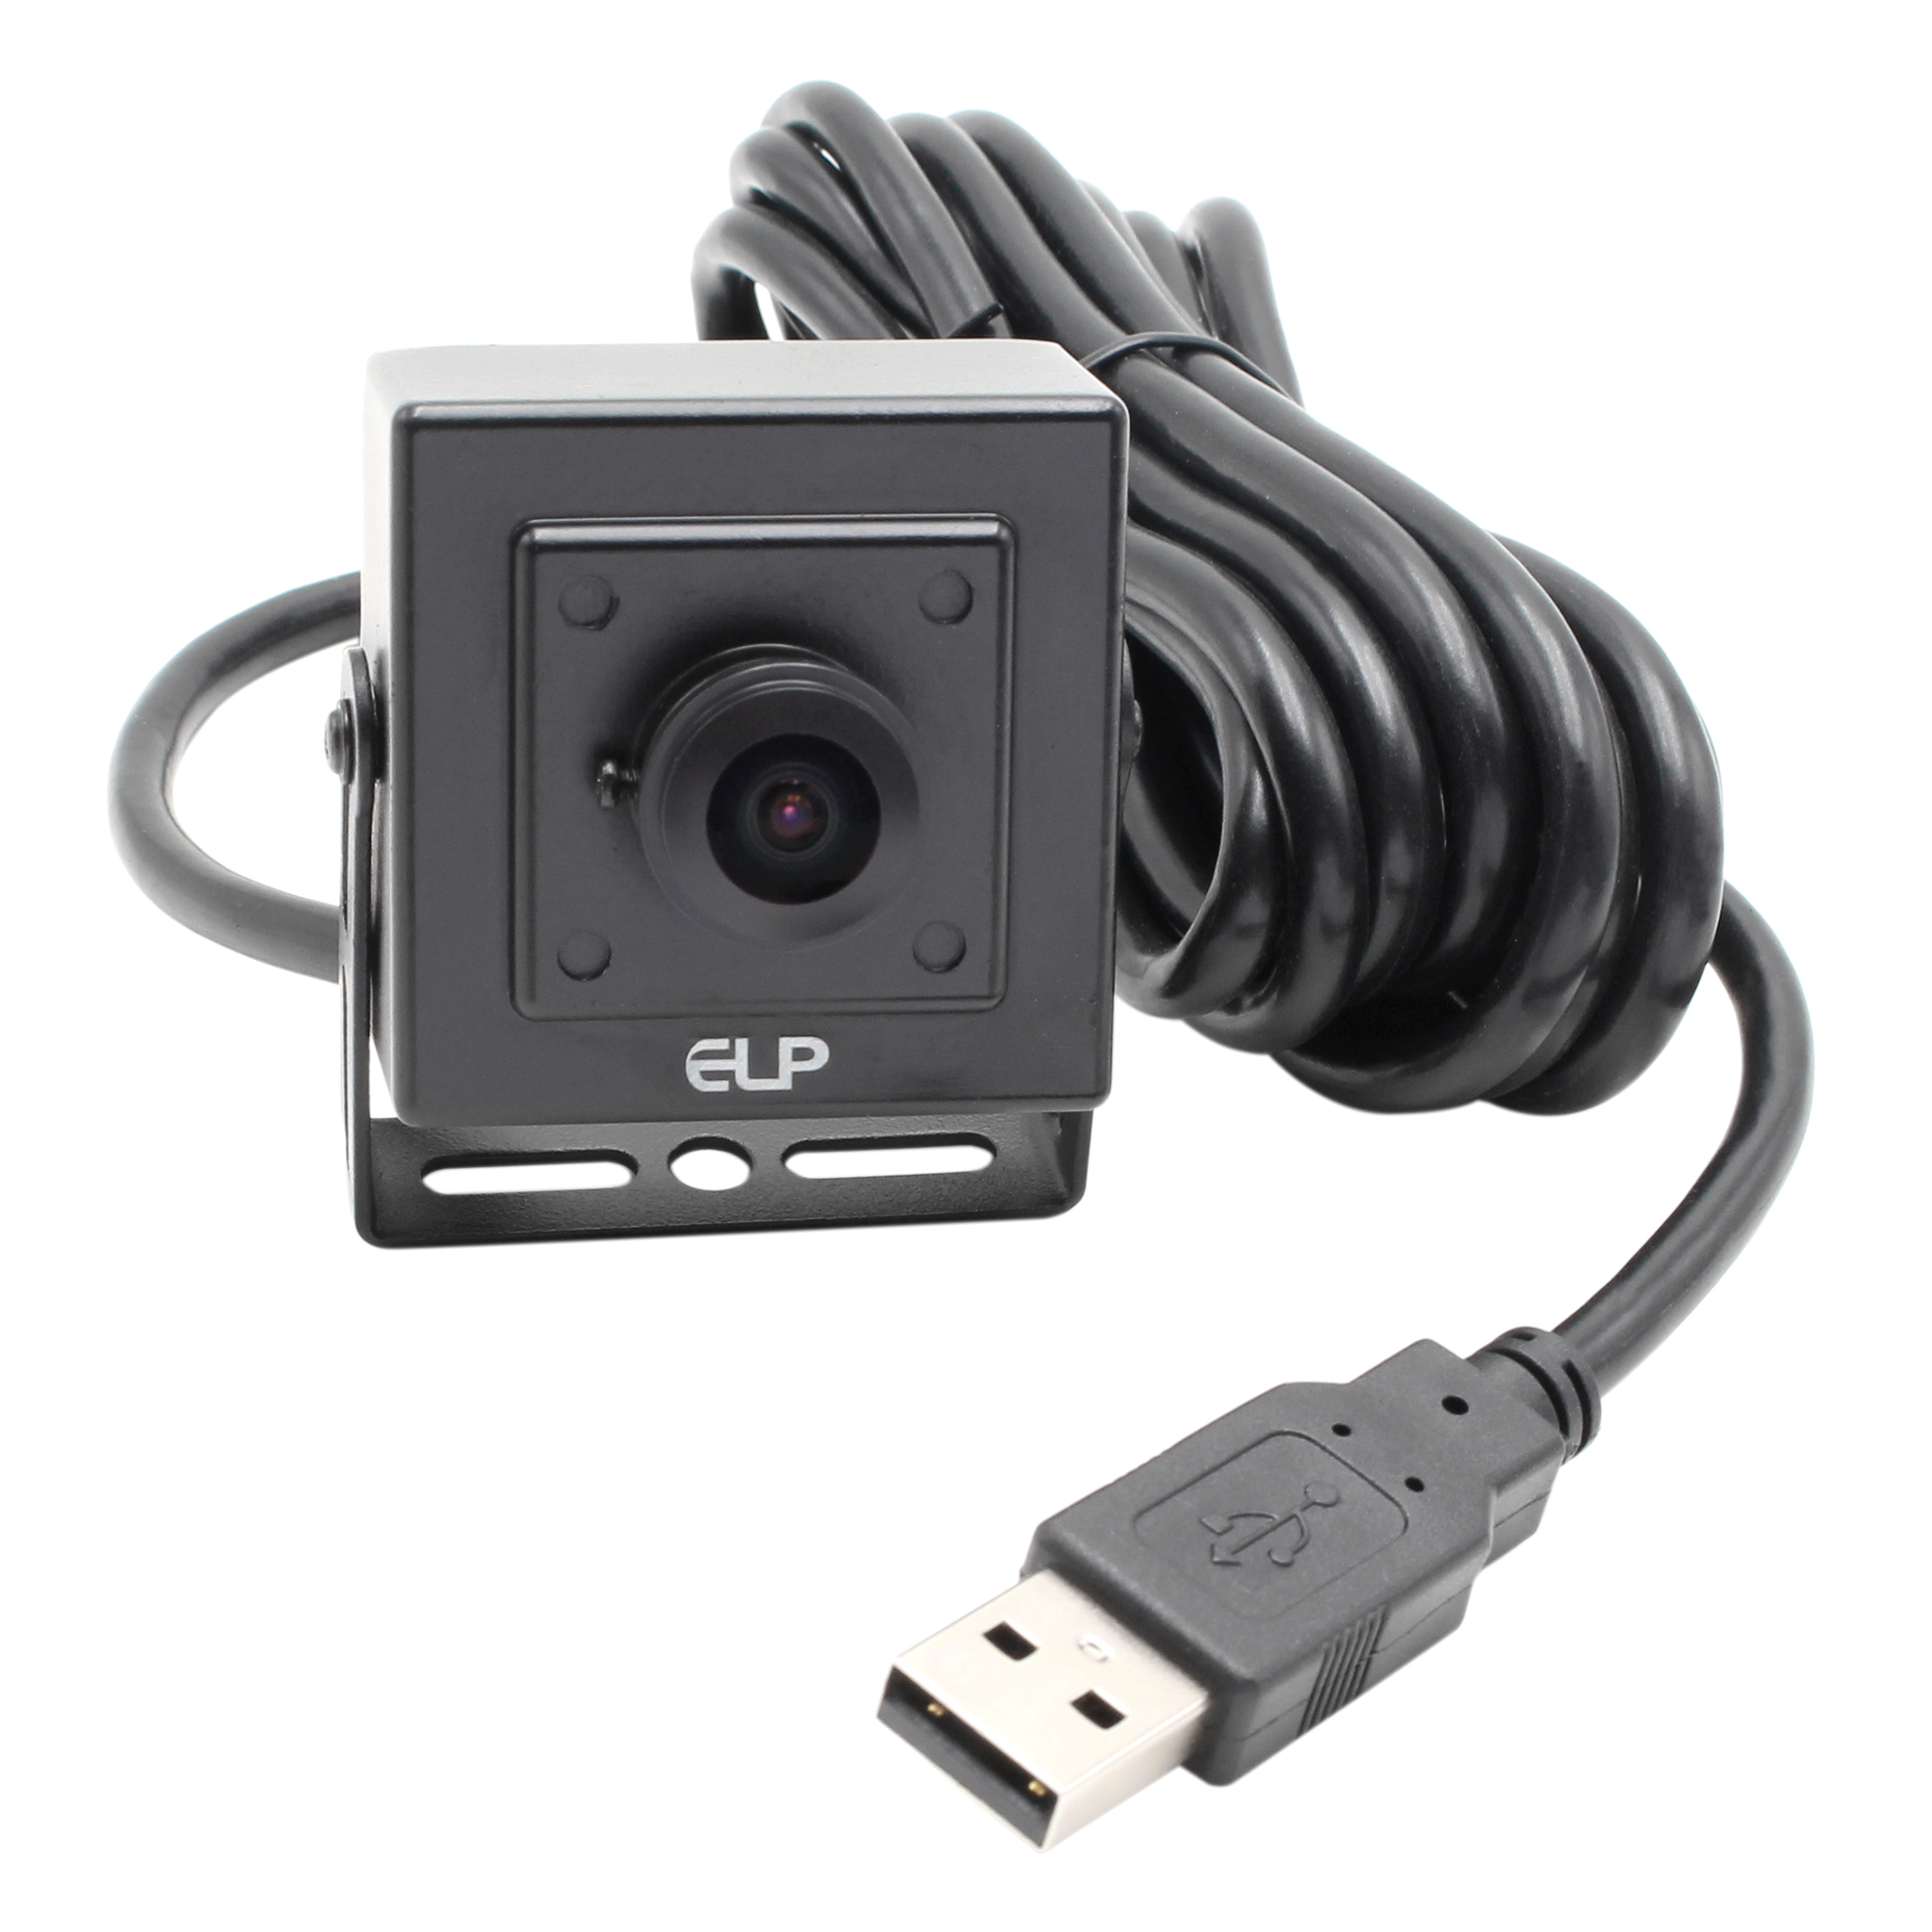 1080P full hd 120fps (at 480p) USB 2.0 wide angle 180degree mini CCTV usb cable fisheye Camera  for atm, Medical Deveice